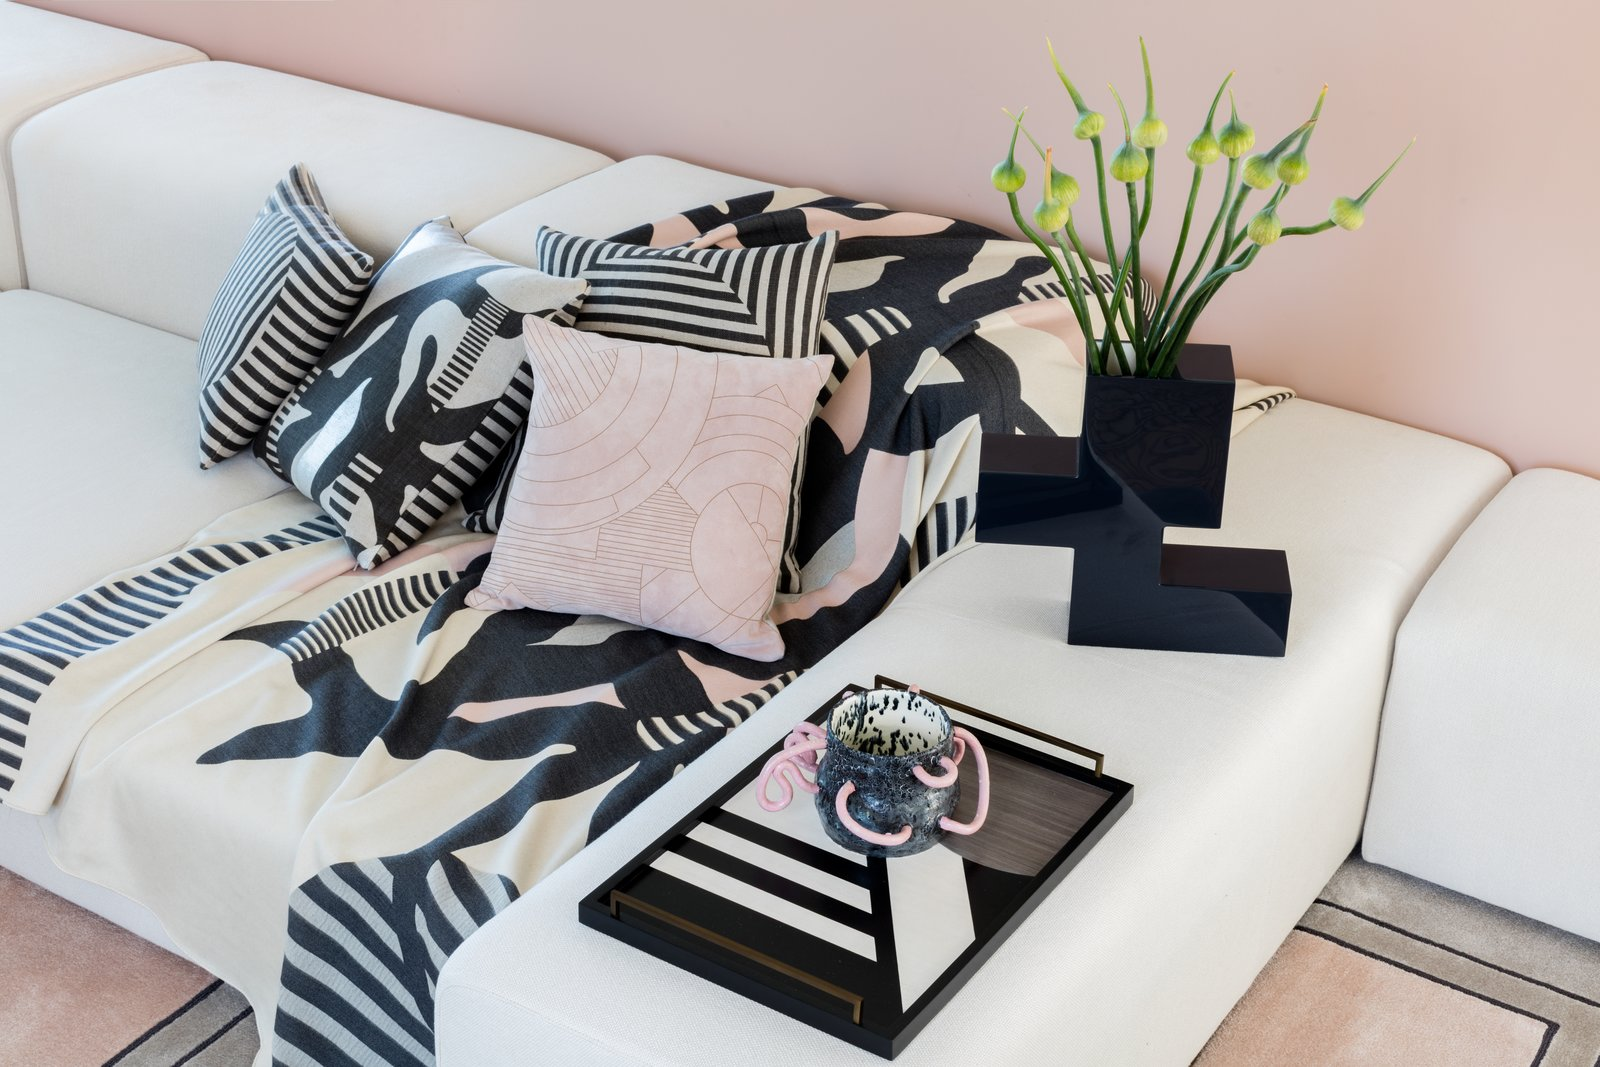 Just in time for NY Fashion Week, designer Kelly Behun has launched a pop-up at Barneys—and a capsule collection for barney.com to go with it. Called A Kook Milieu, the shop-in-shop nods to the geometric Pattern and Decoration art movement of the 1970s and '80s. Along with her own deigns, Behun welcomes collaborators Manal Kara (whose ceramic vase is seen here) and Beth Goobic. See it through October 31, 2016 at Barneys New York's Madison Avenue Flagship. TheWindow.Barneys.com  Photo by Lauren Coleman From the Editors' Inbox: September 2016 by Aileen Kwun